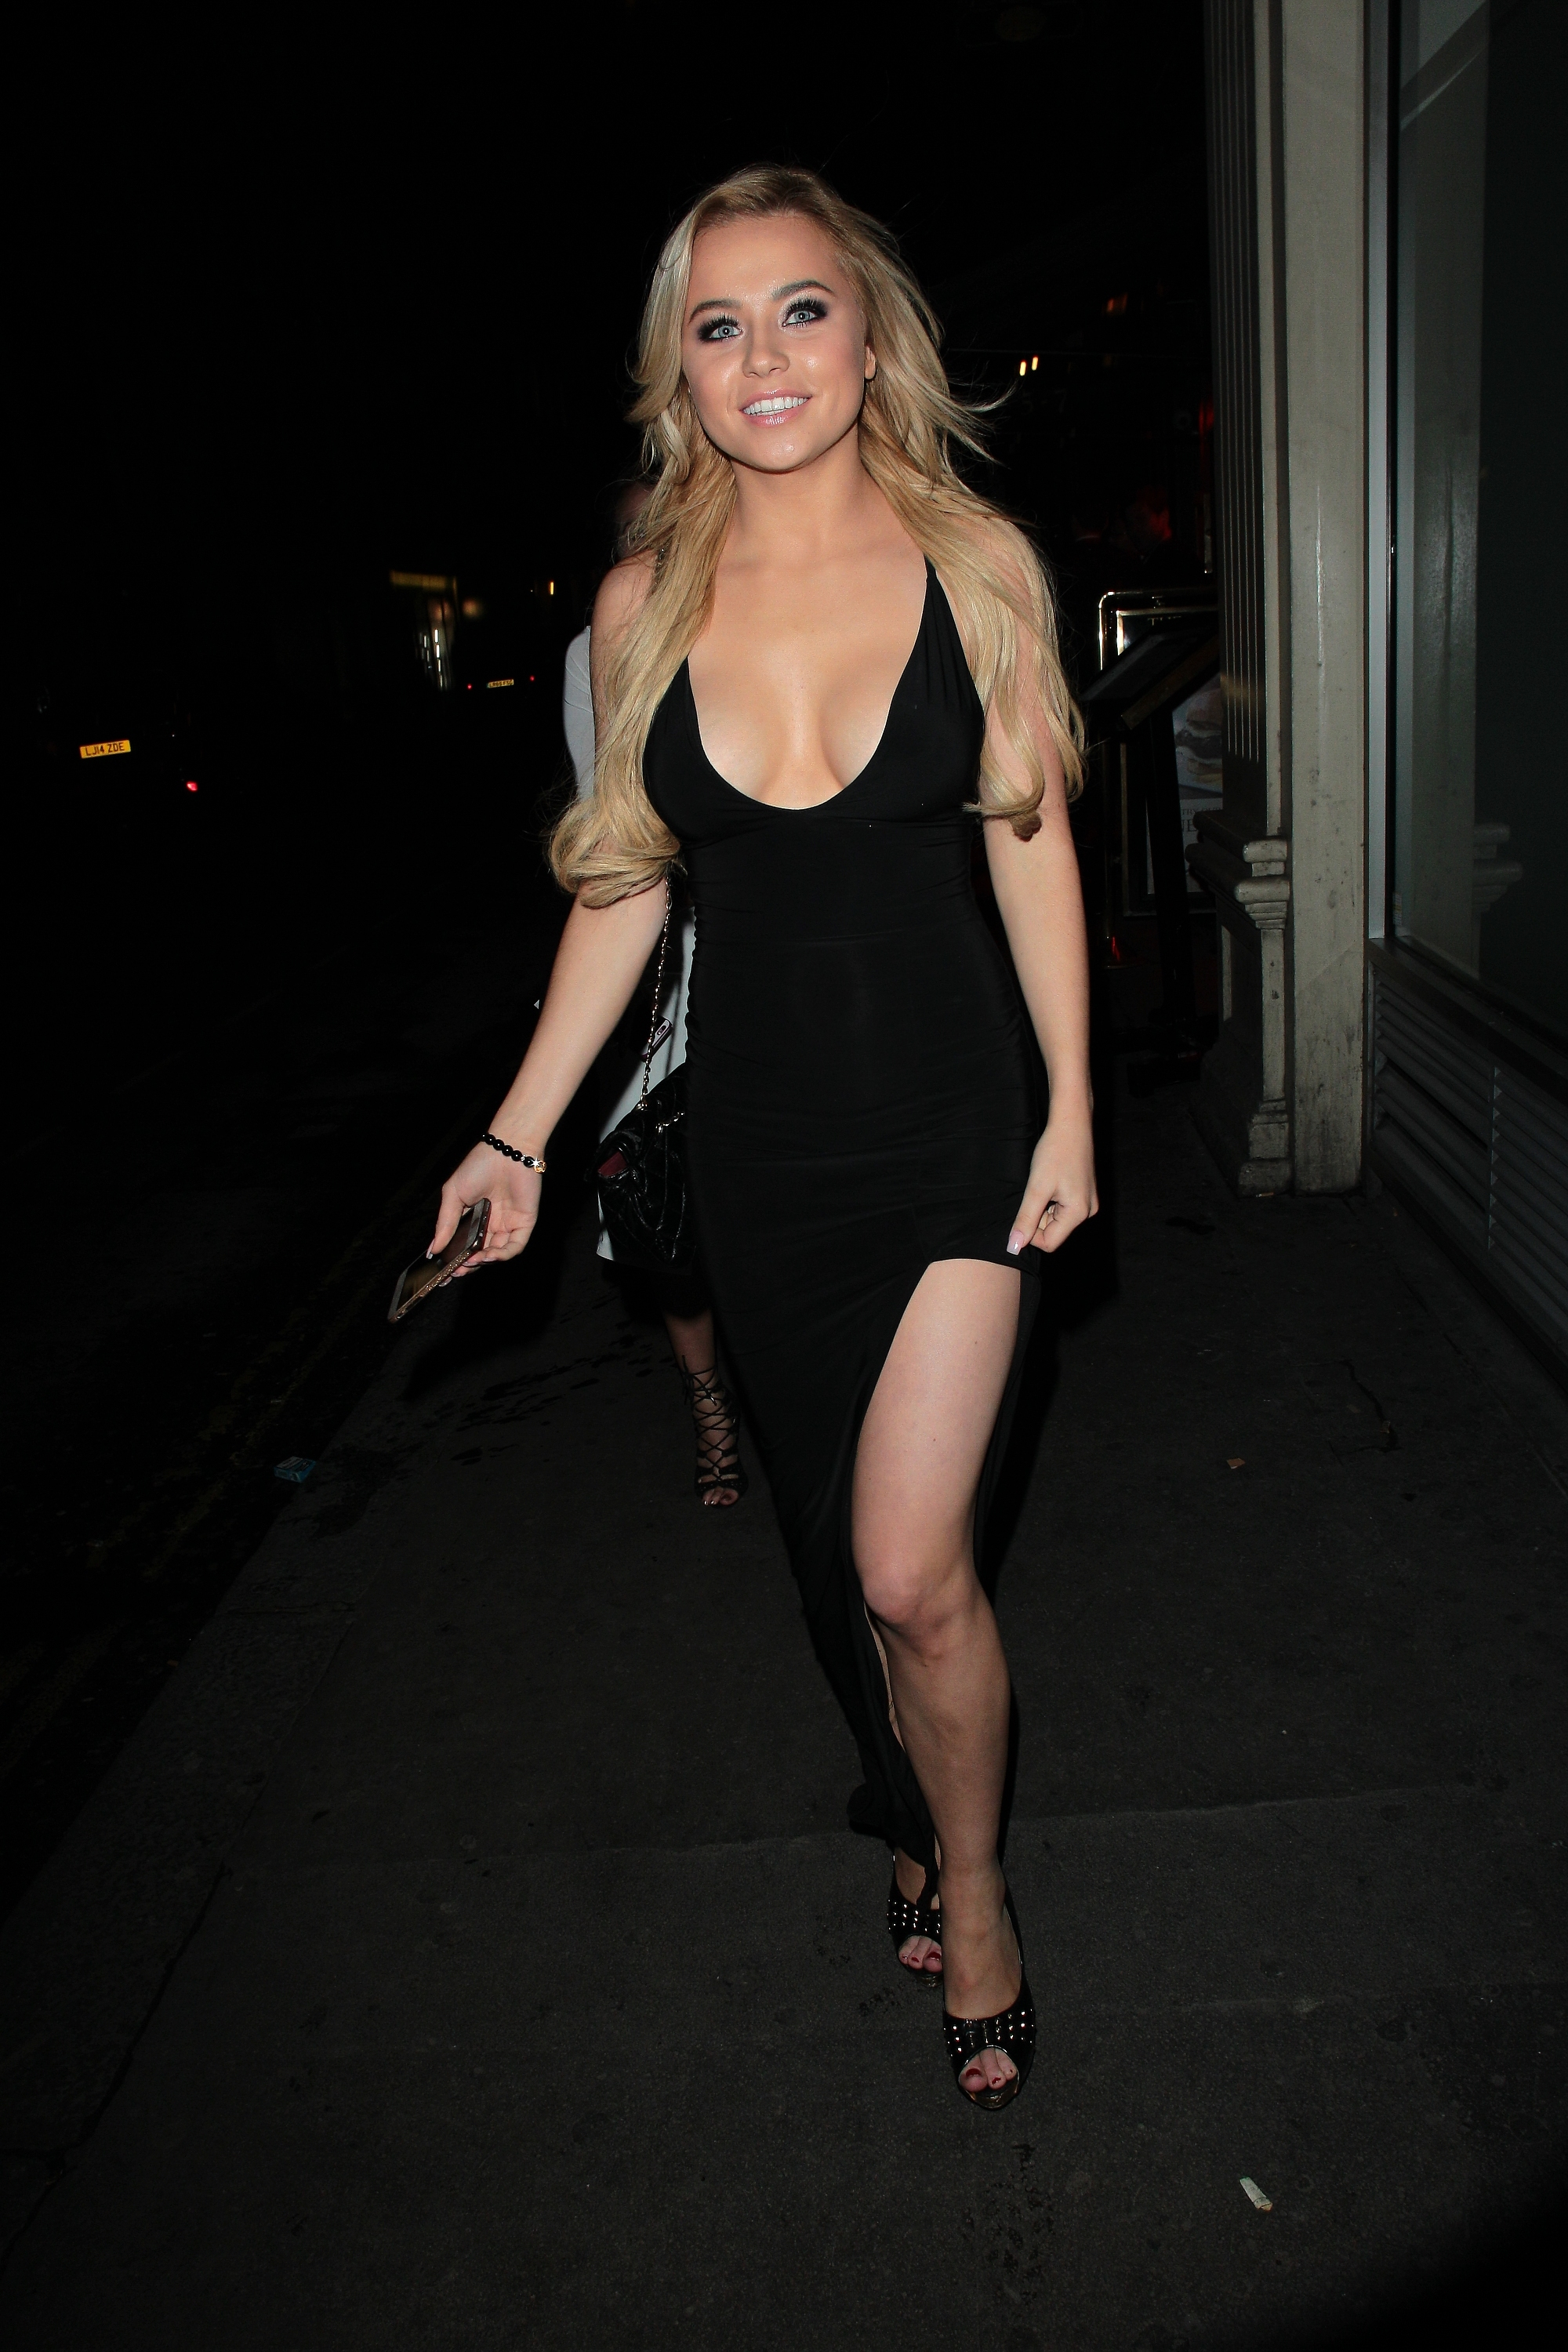 Feet DJ Melissa Reeves naked (75 foto and video), Sexy, Fappening, Feet, braless 2006